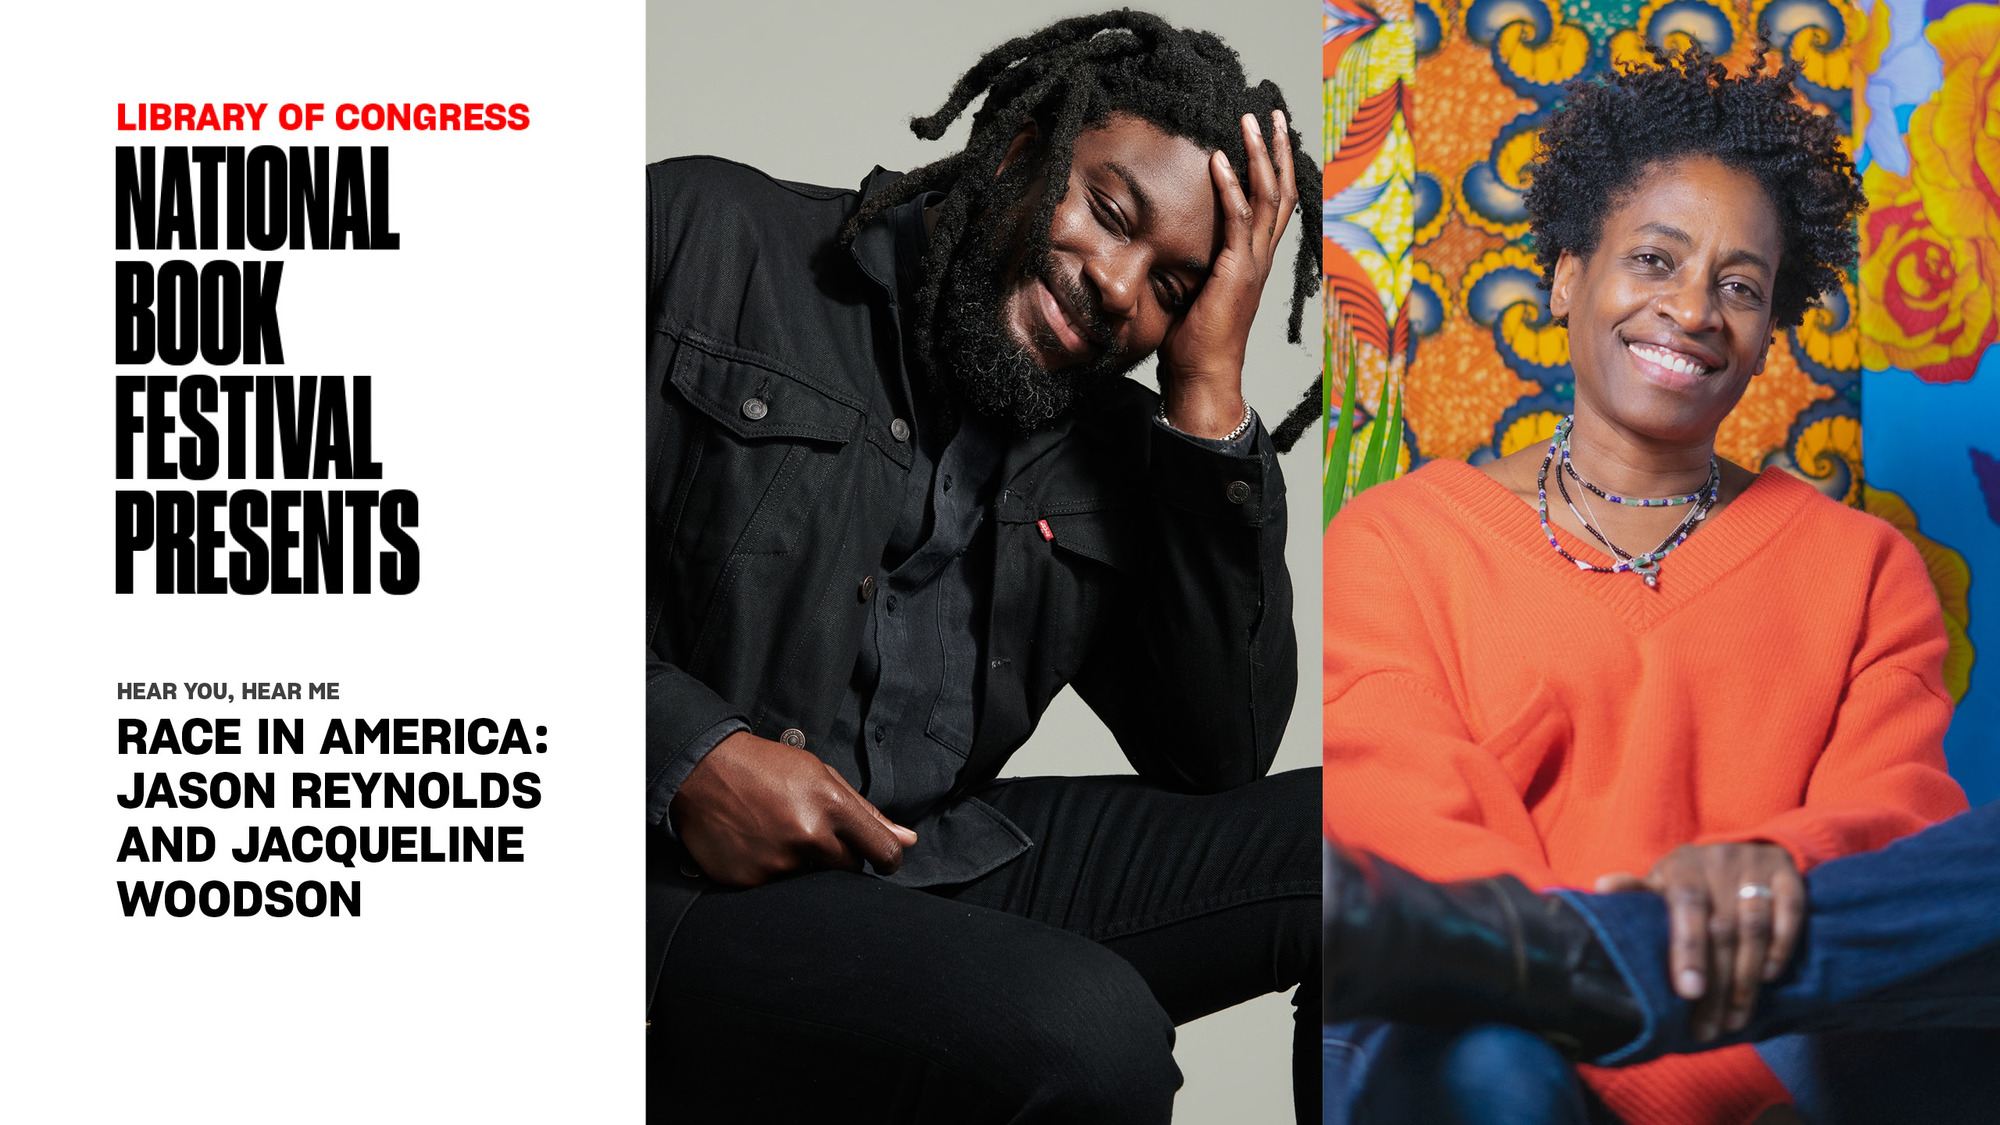 Race in America: Jason Reynolds and Jacqueline Woodson